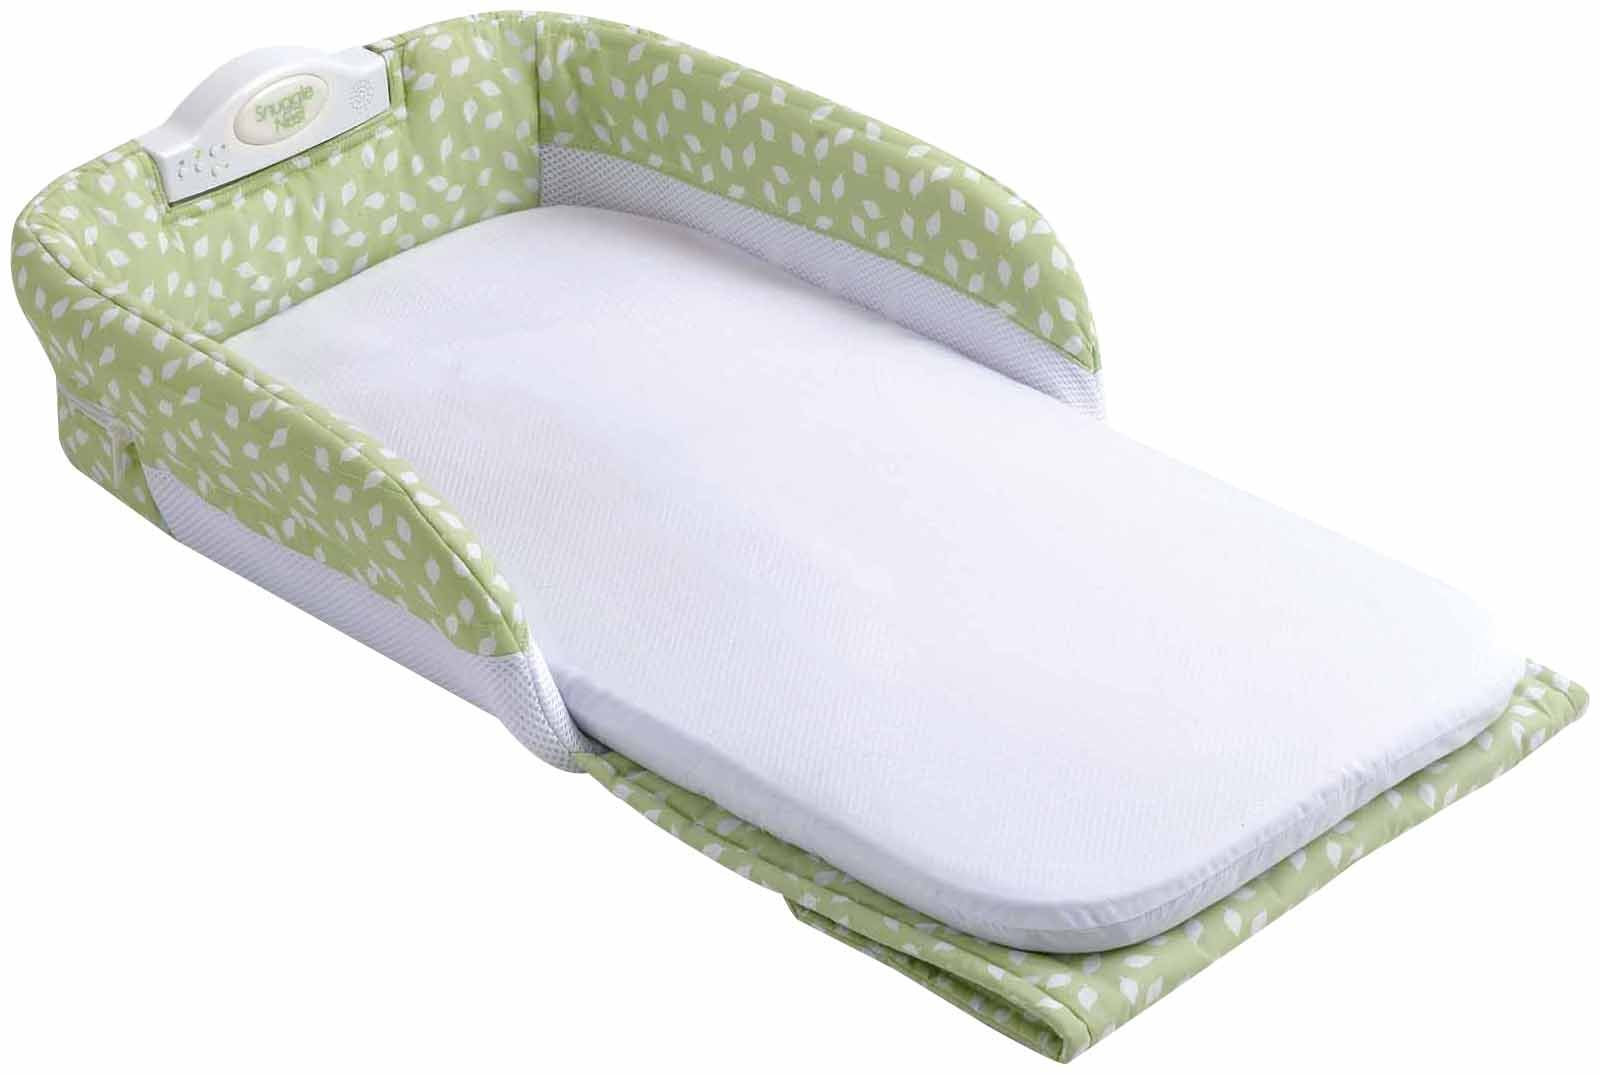 Baby Delight Snuggle Nest - Green Leaves - 1 ct.